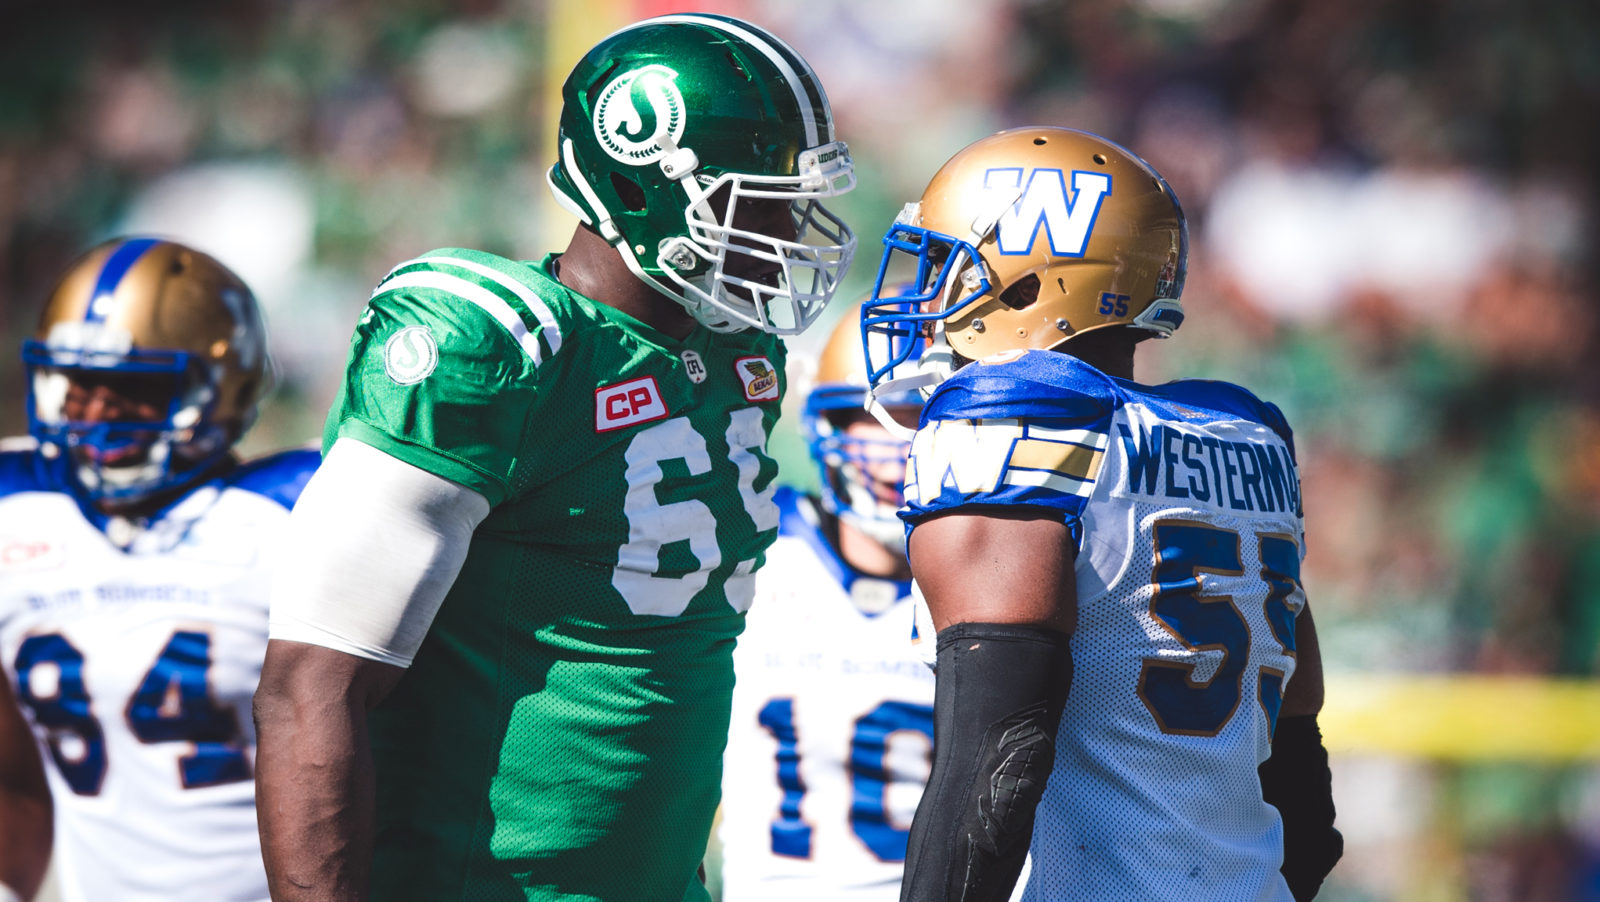 41abf683d Bombers out for vengeance against Riders in Banjo Bowl - CFL.ca